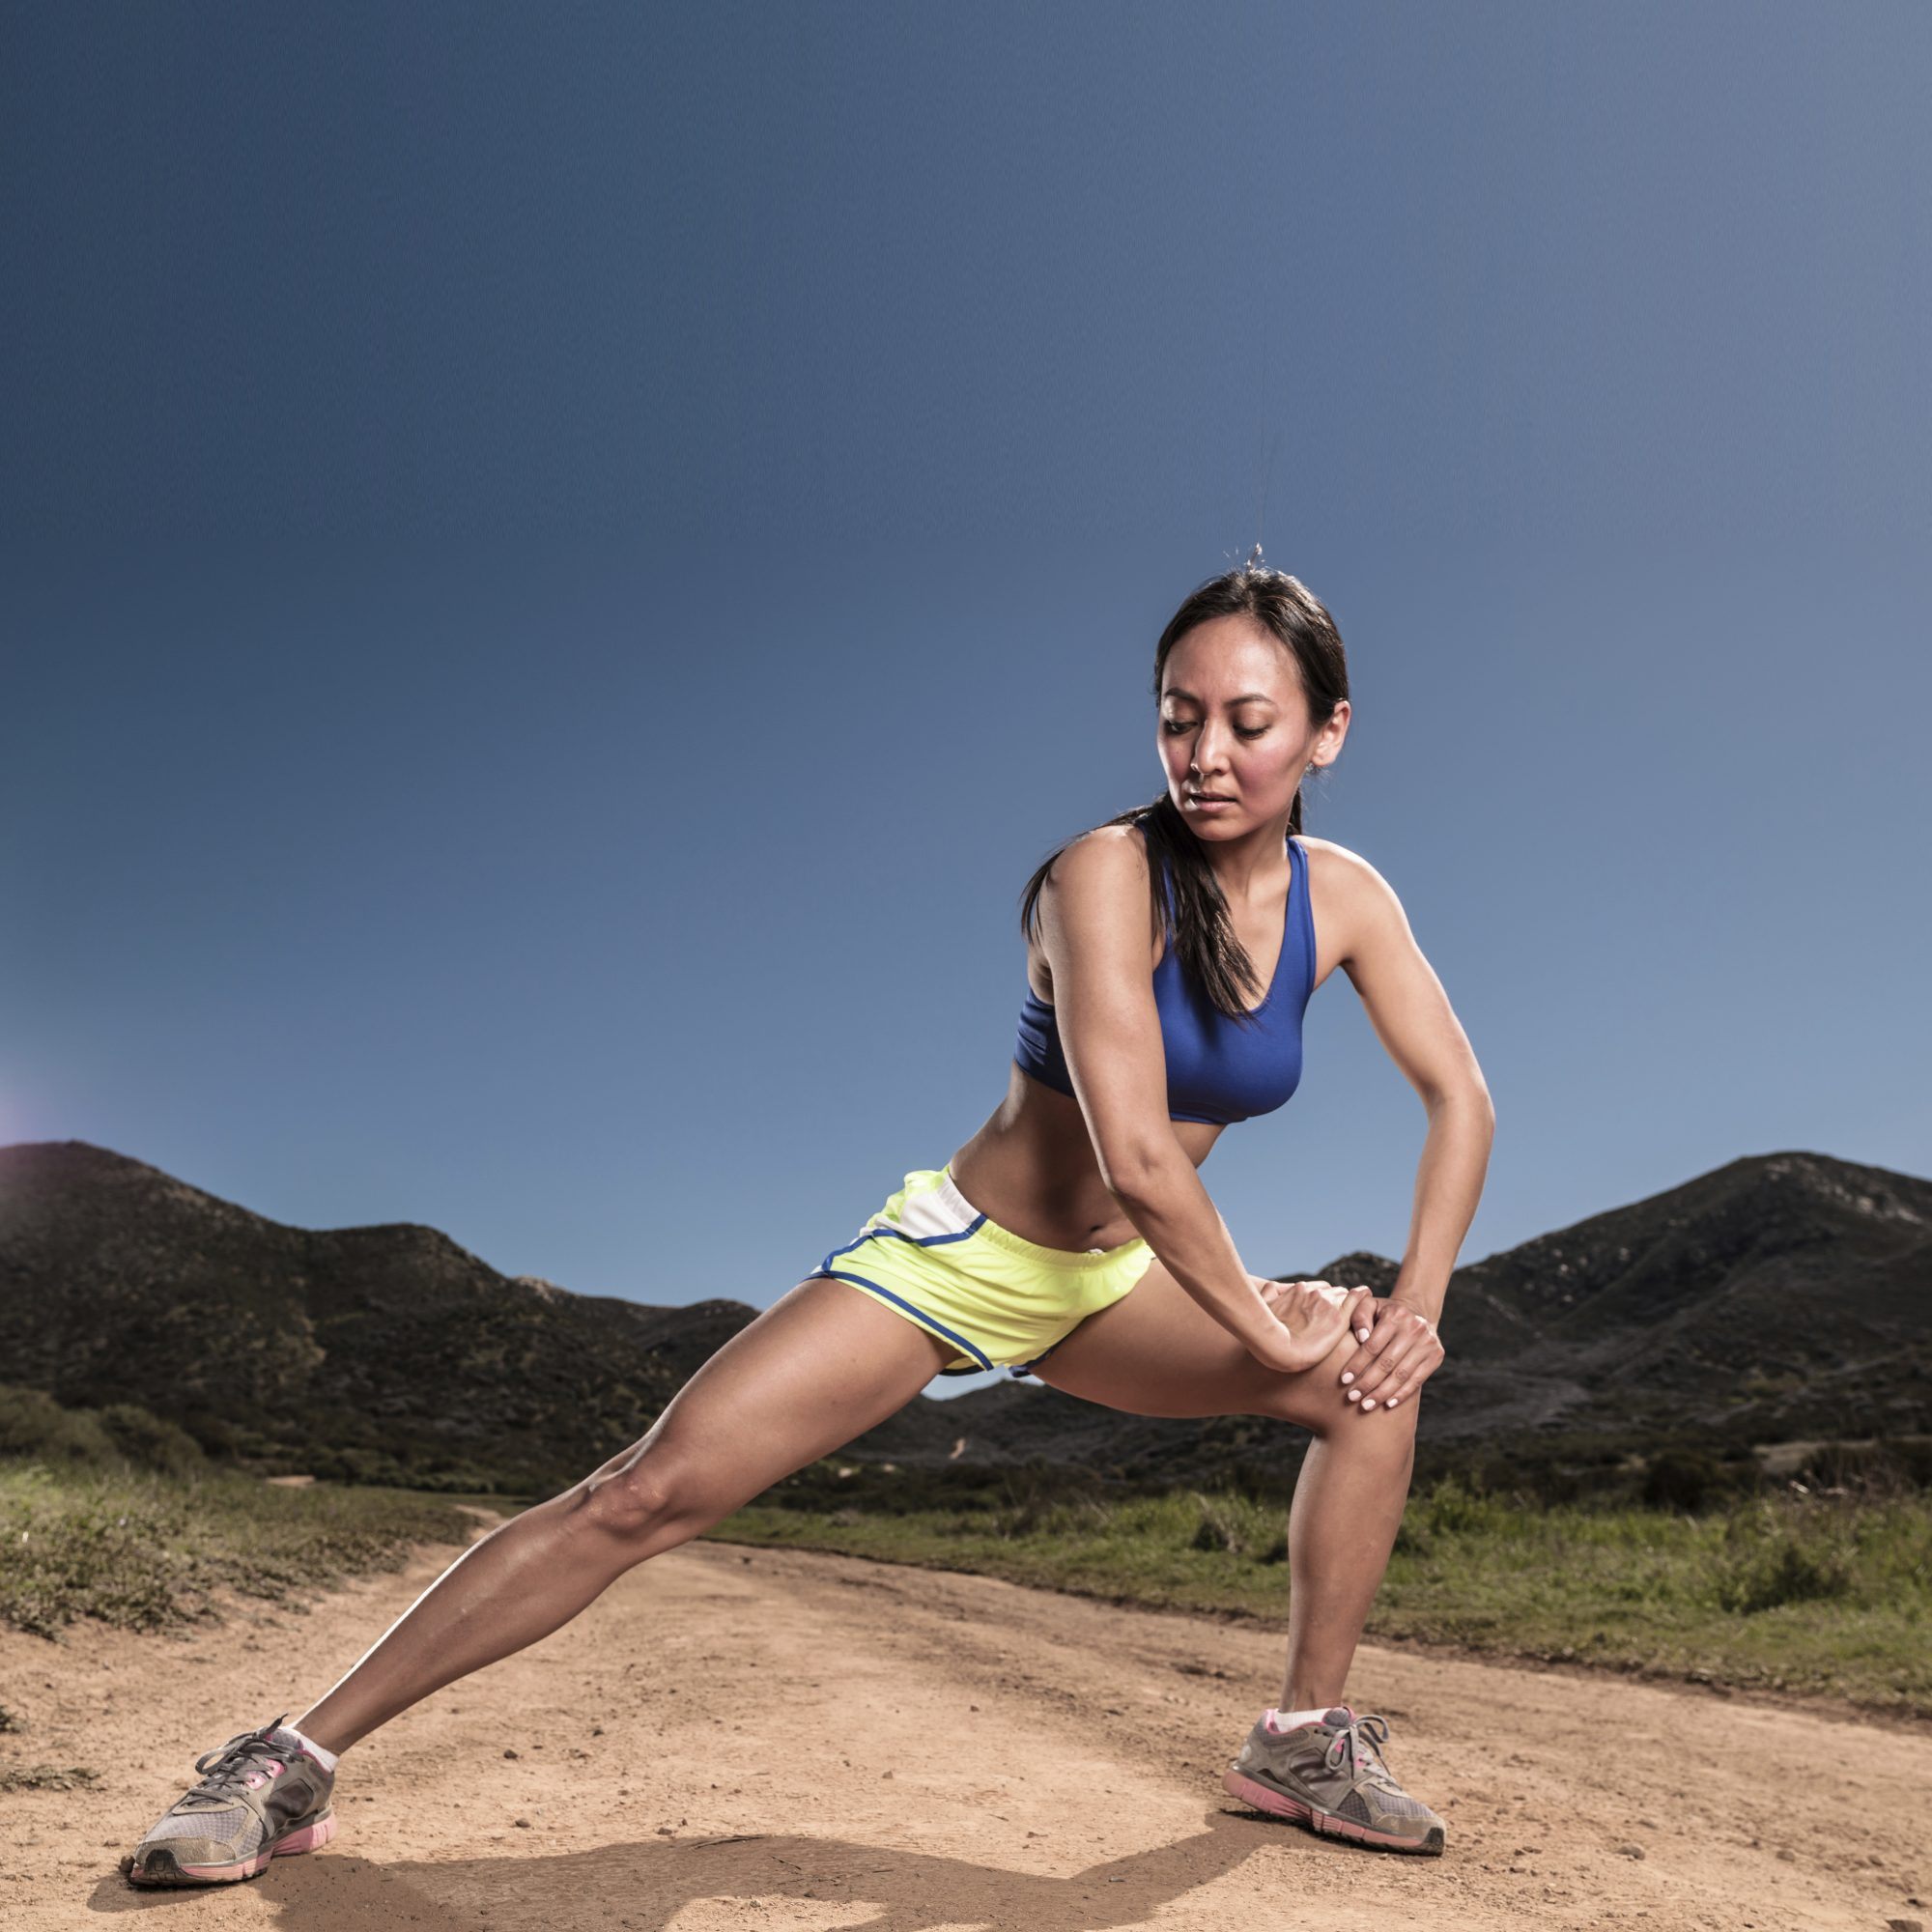 The Best Exercises to Prevent Knee and Ankle Injuries